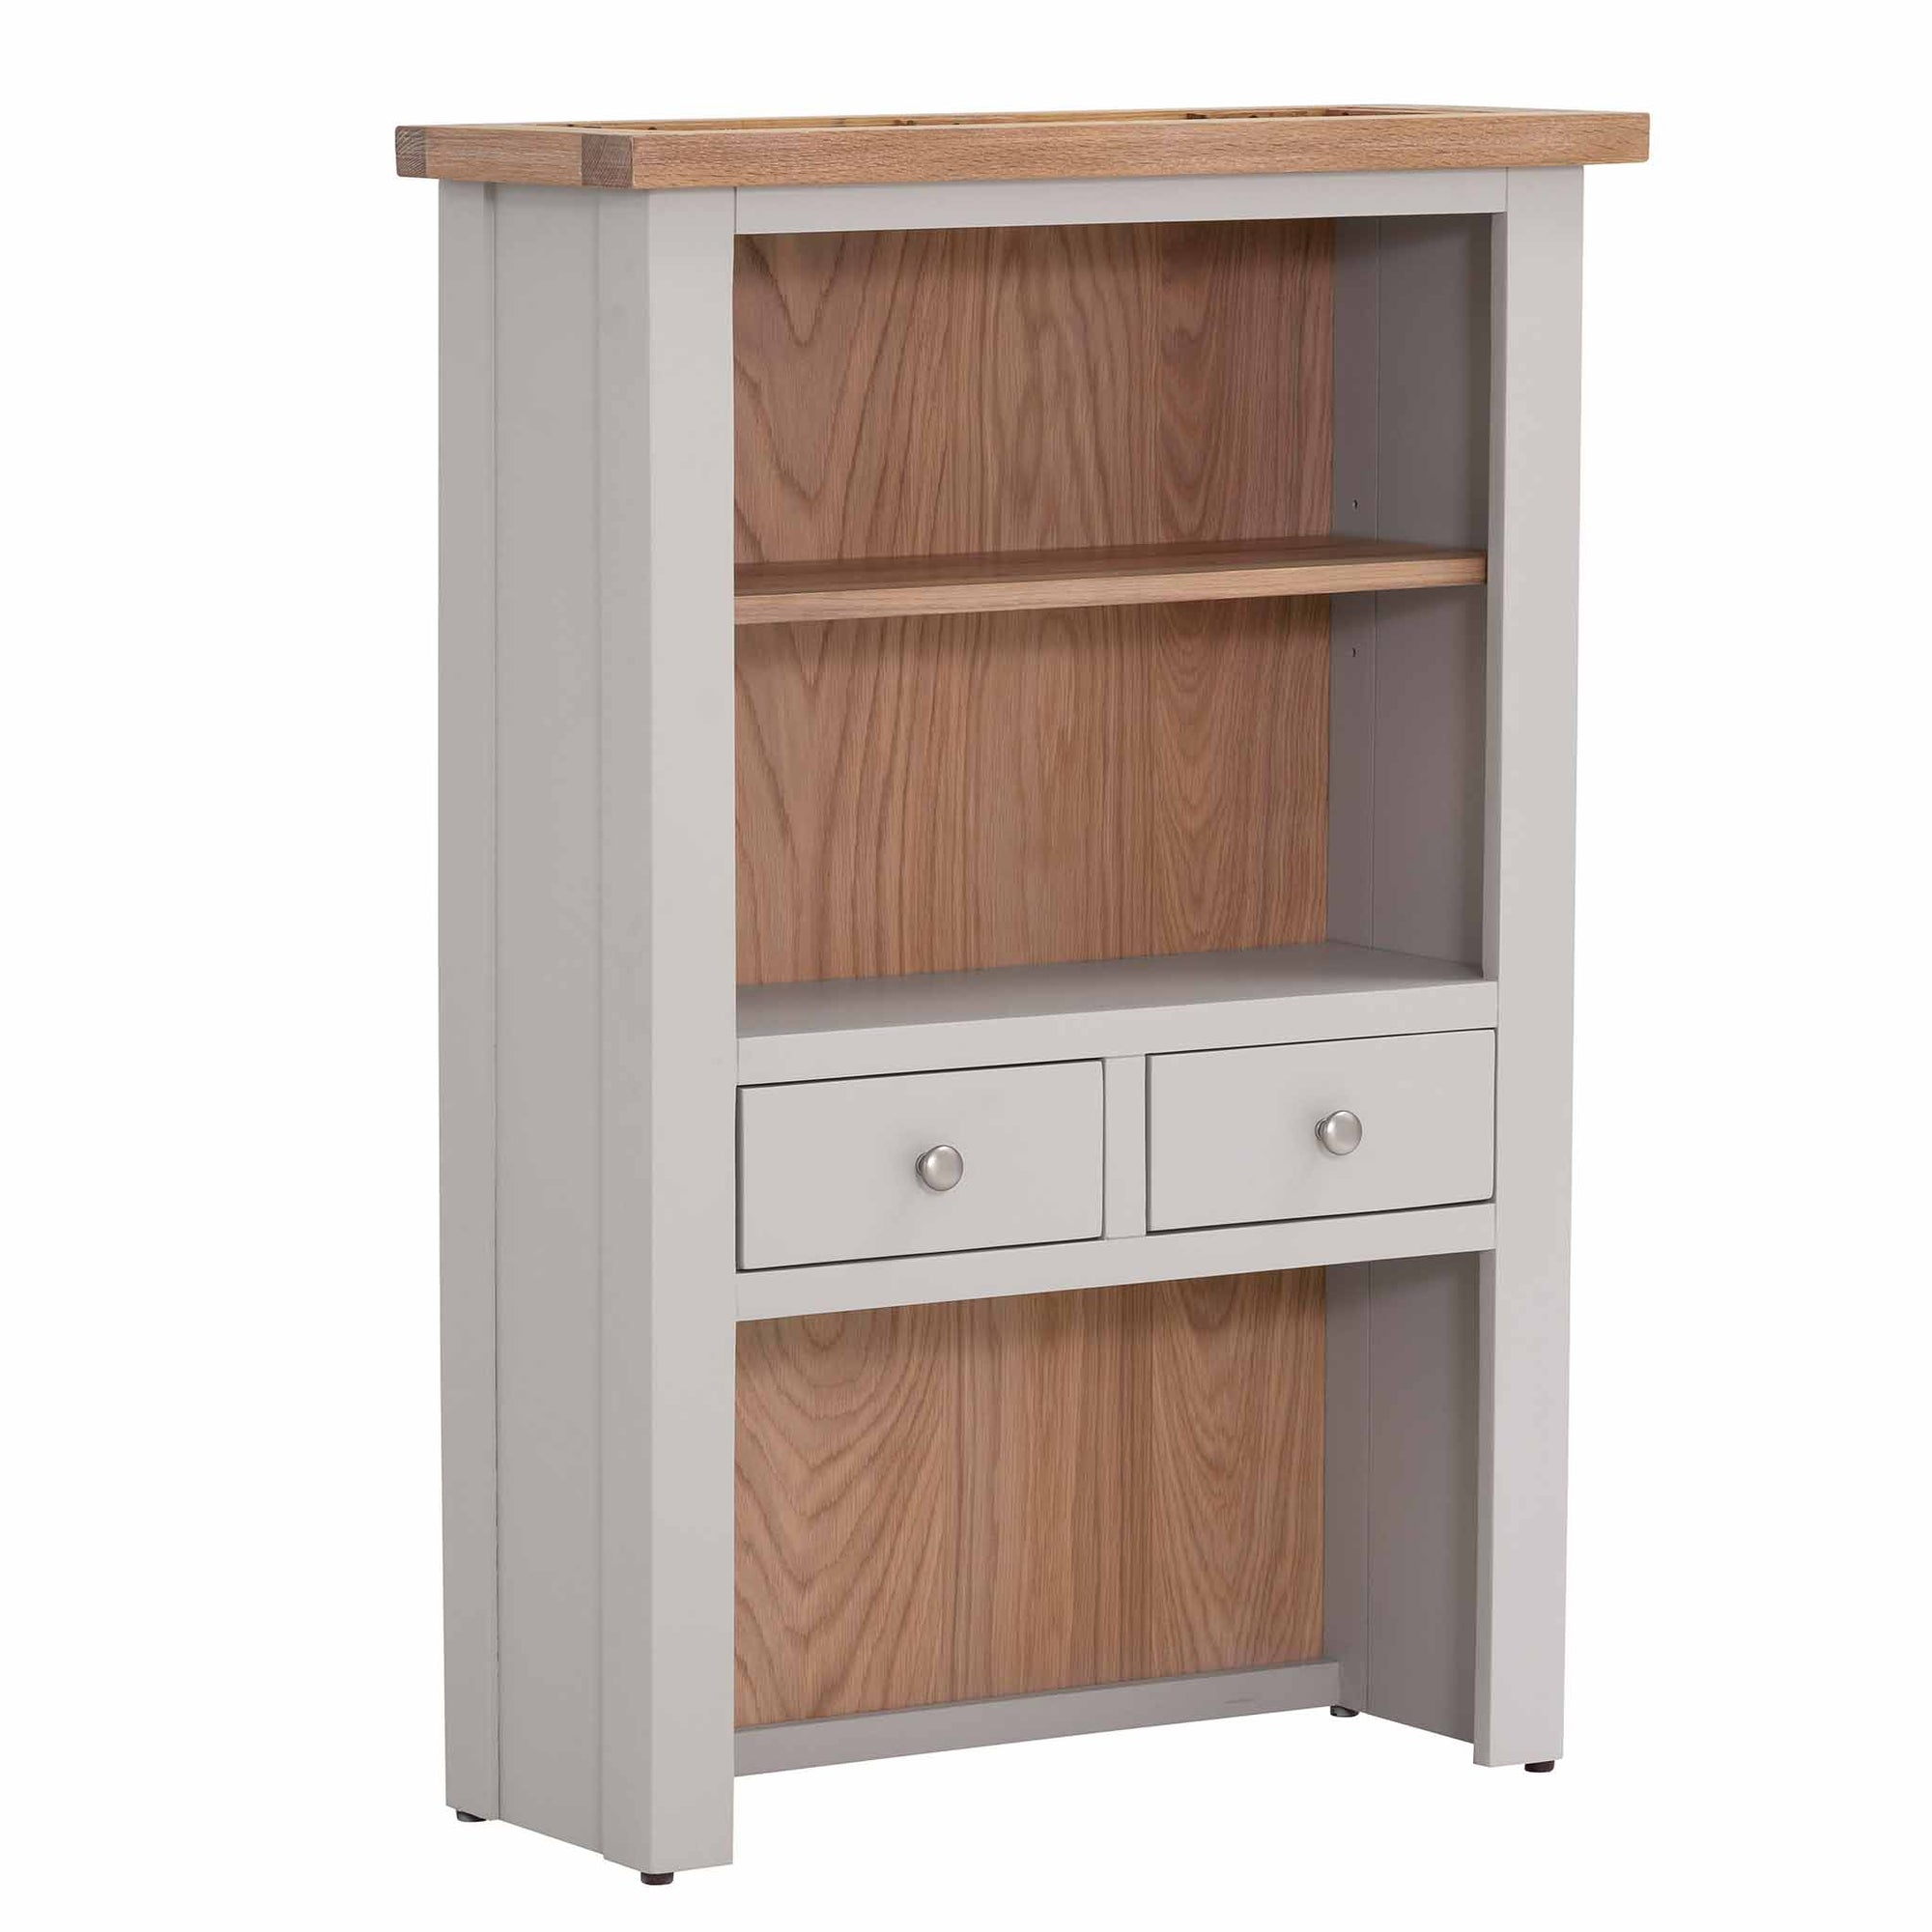 Charlestown Grey 2 Drawer Kitchen Hutch from Roseland Furniture